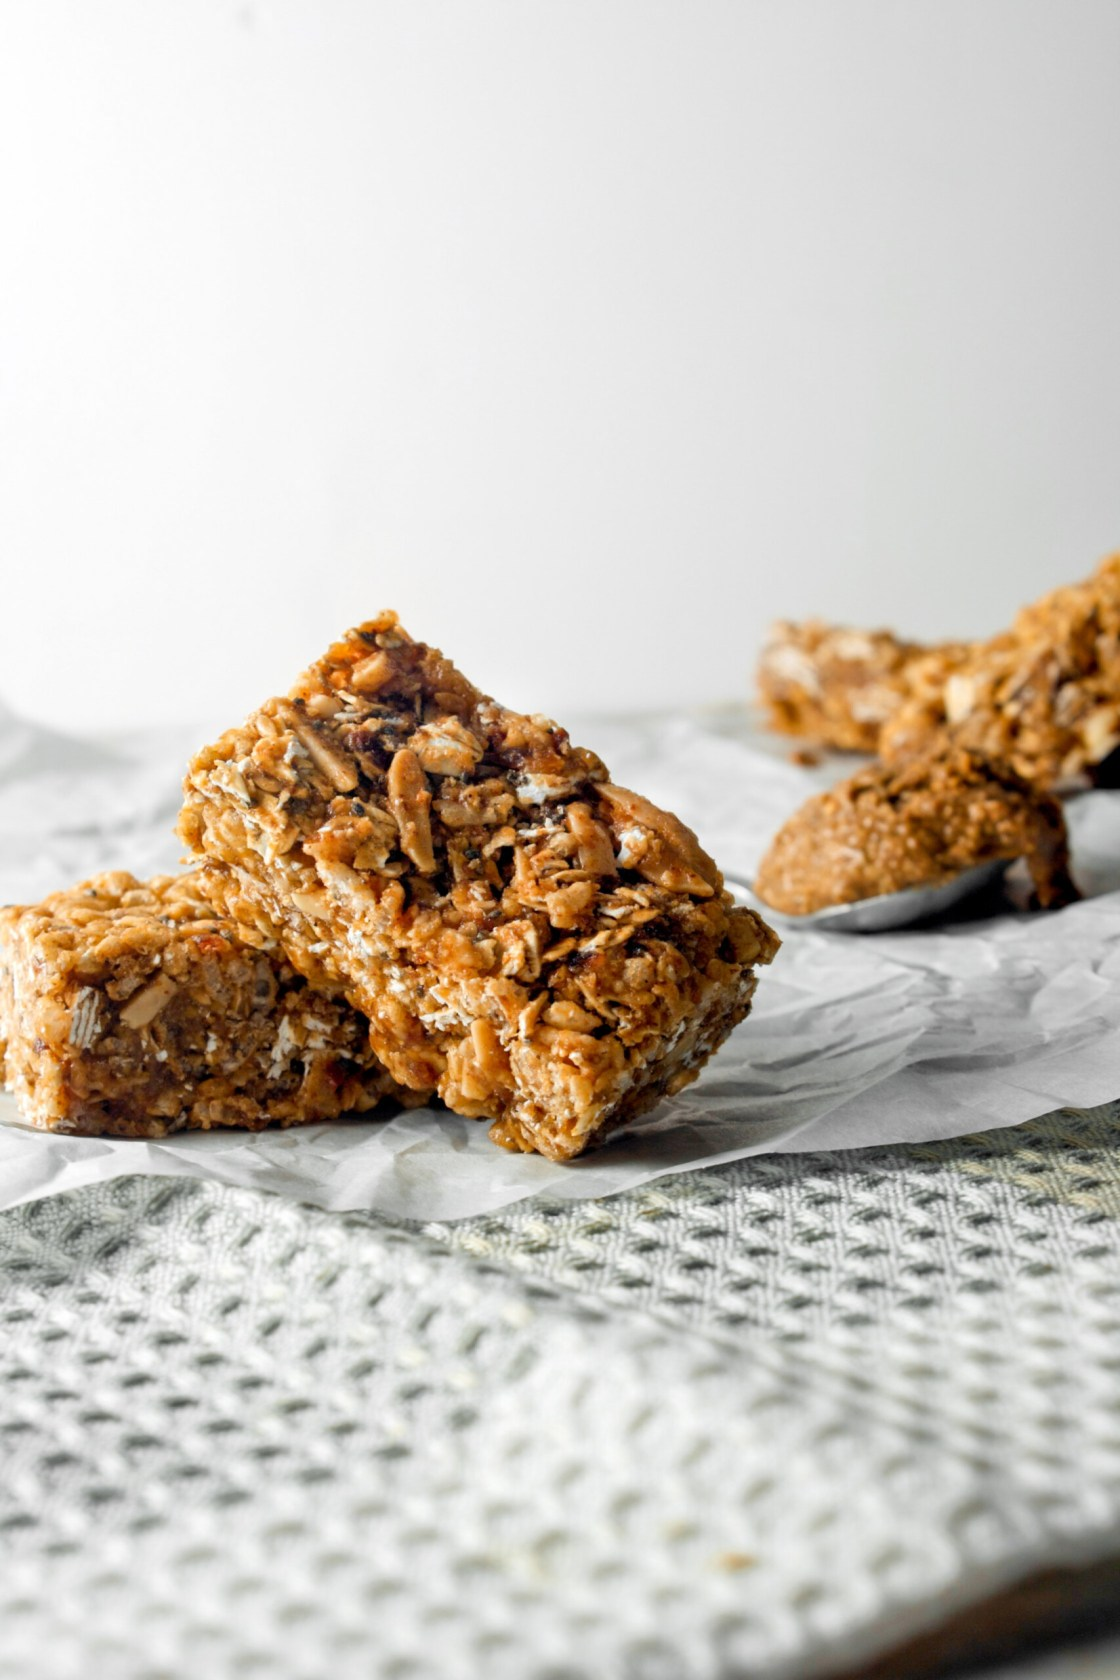 Photograph of almond butter granola bars on white paper